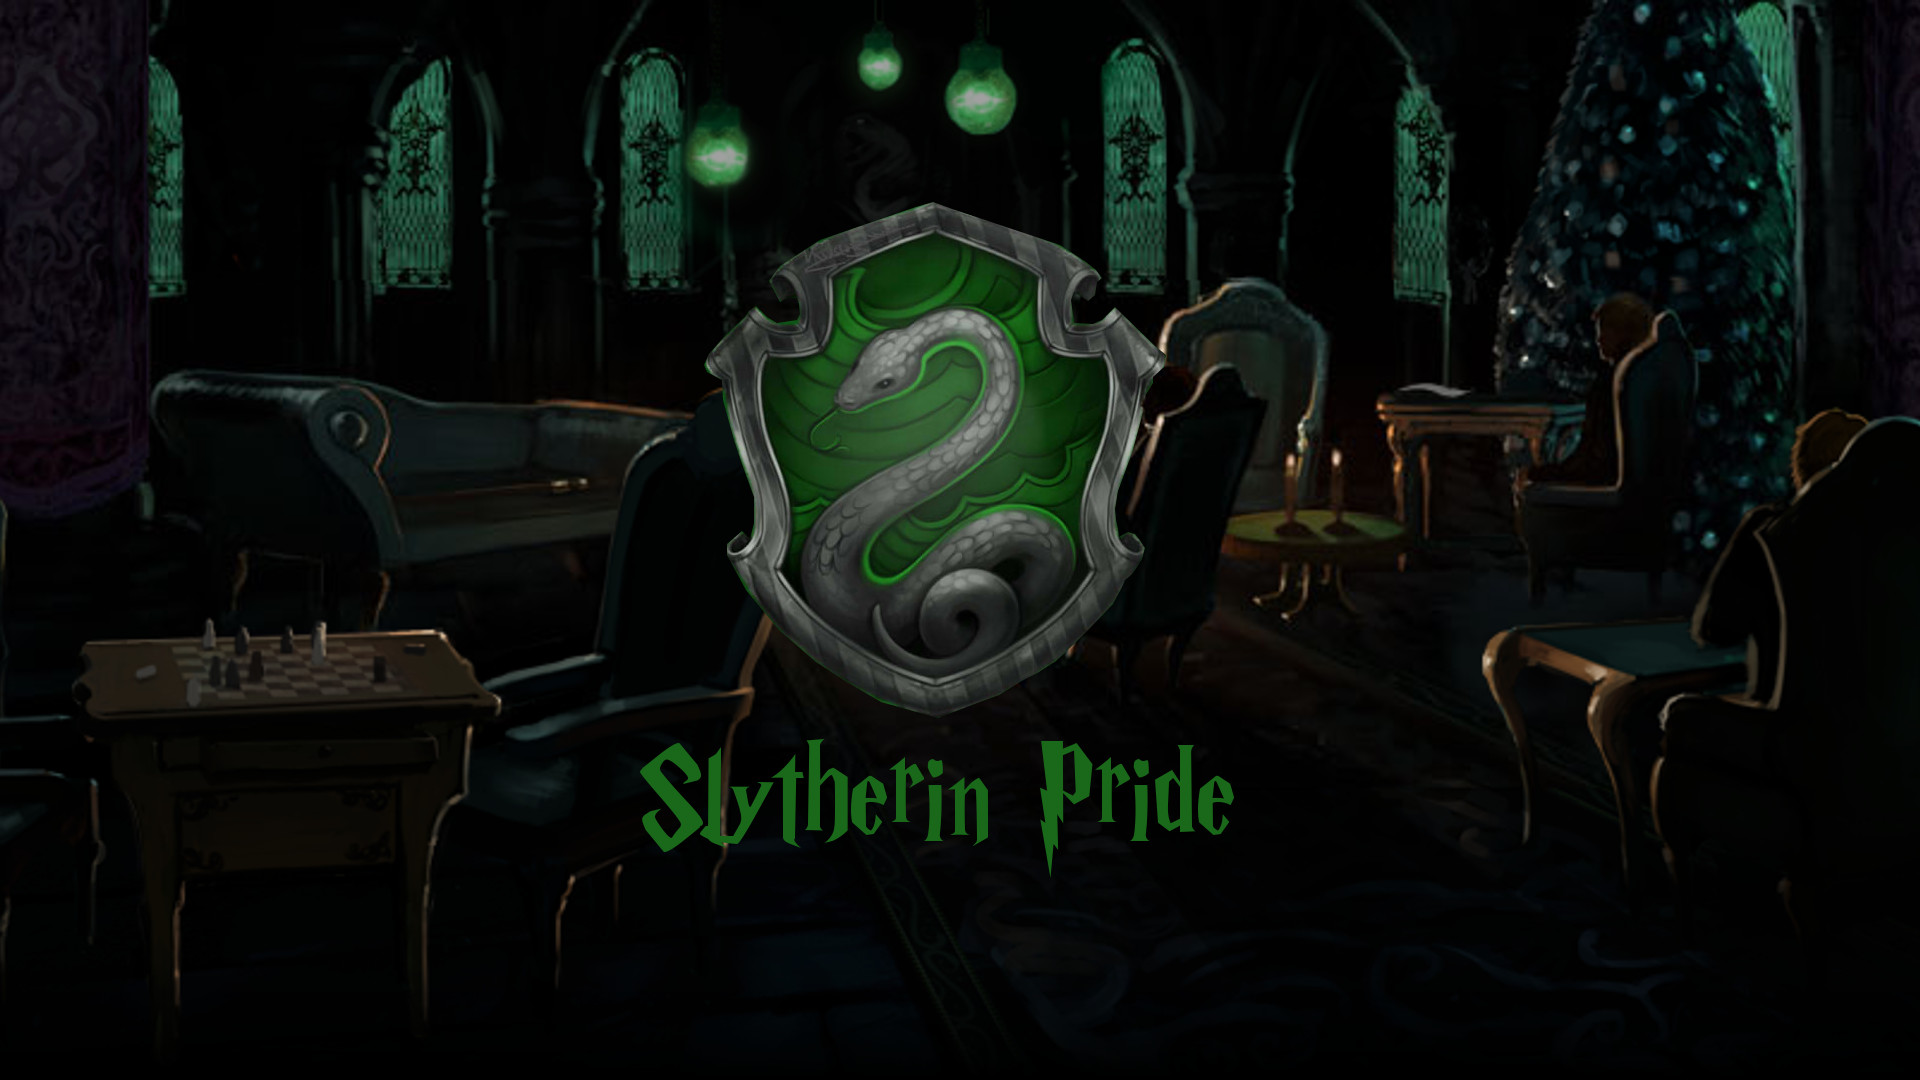 Slytherin common room wallpaper by Thalvunil Slytherin common room wallpaper  by Thalvunil